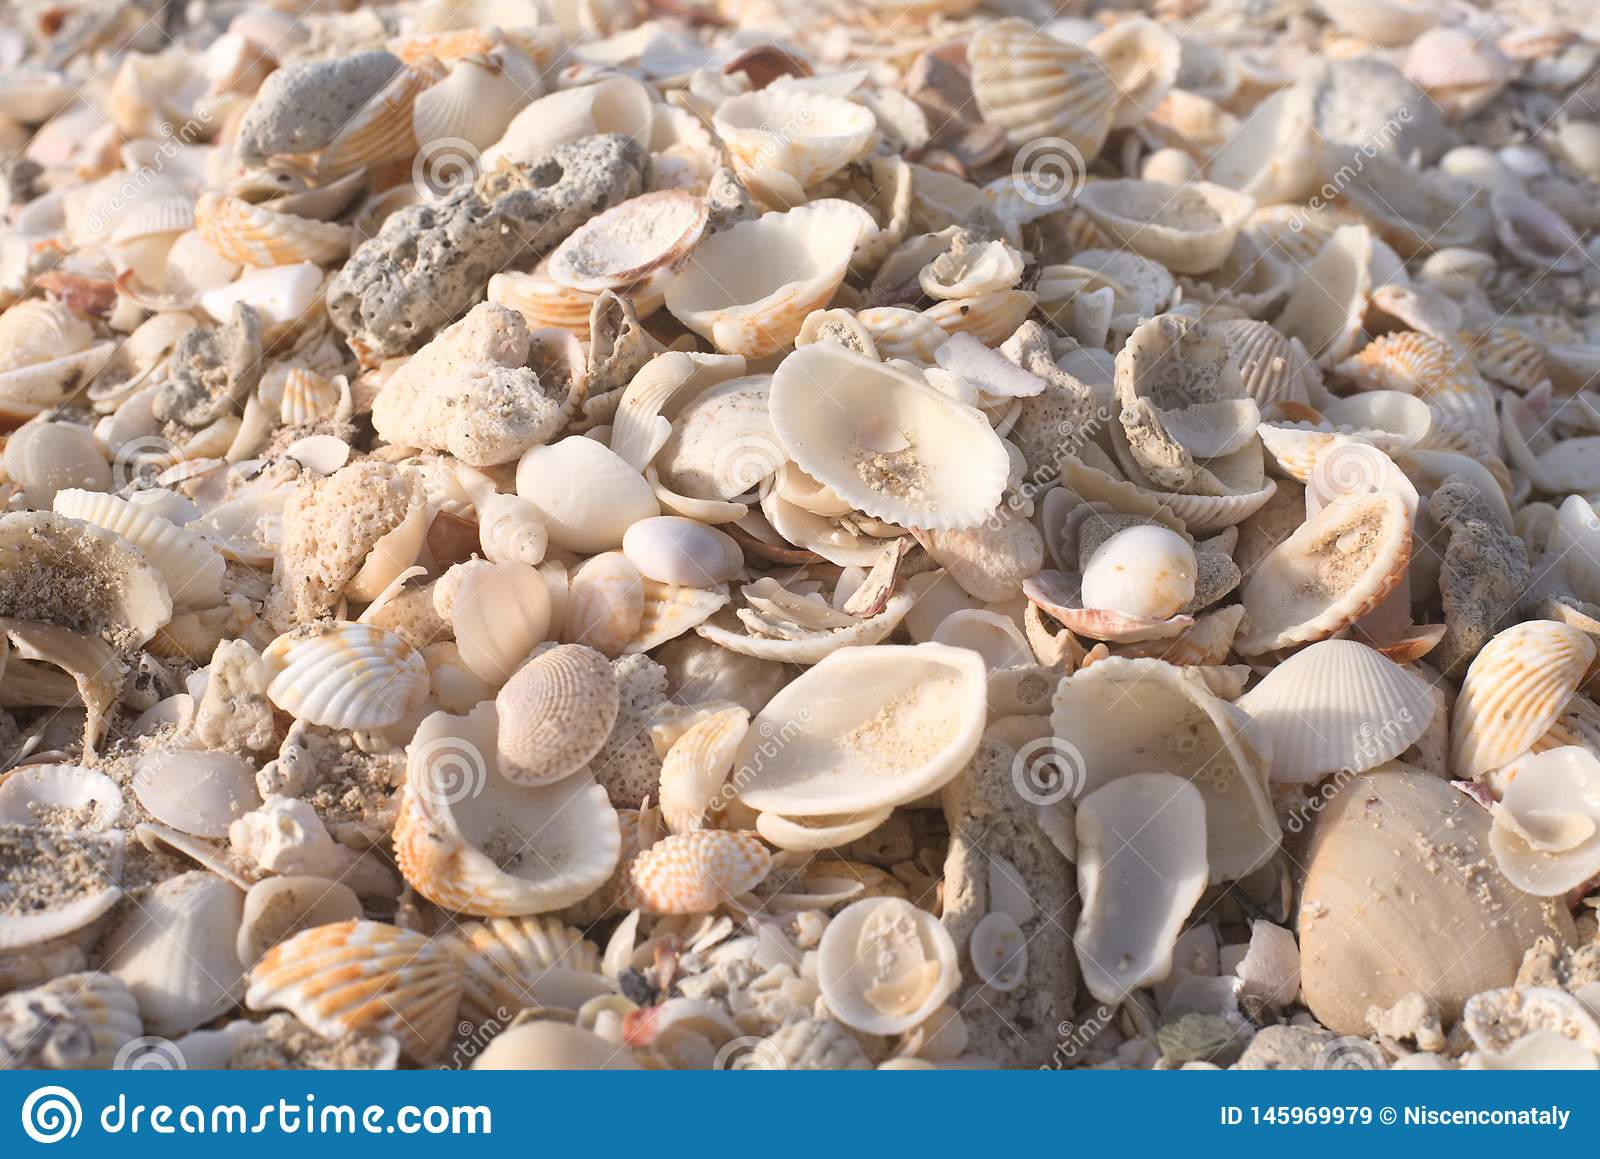 Seashells on a sandy ocean beach